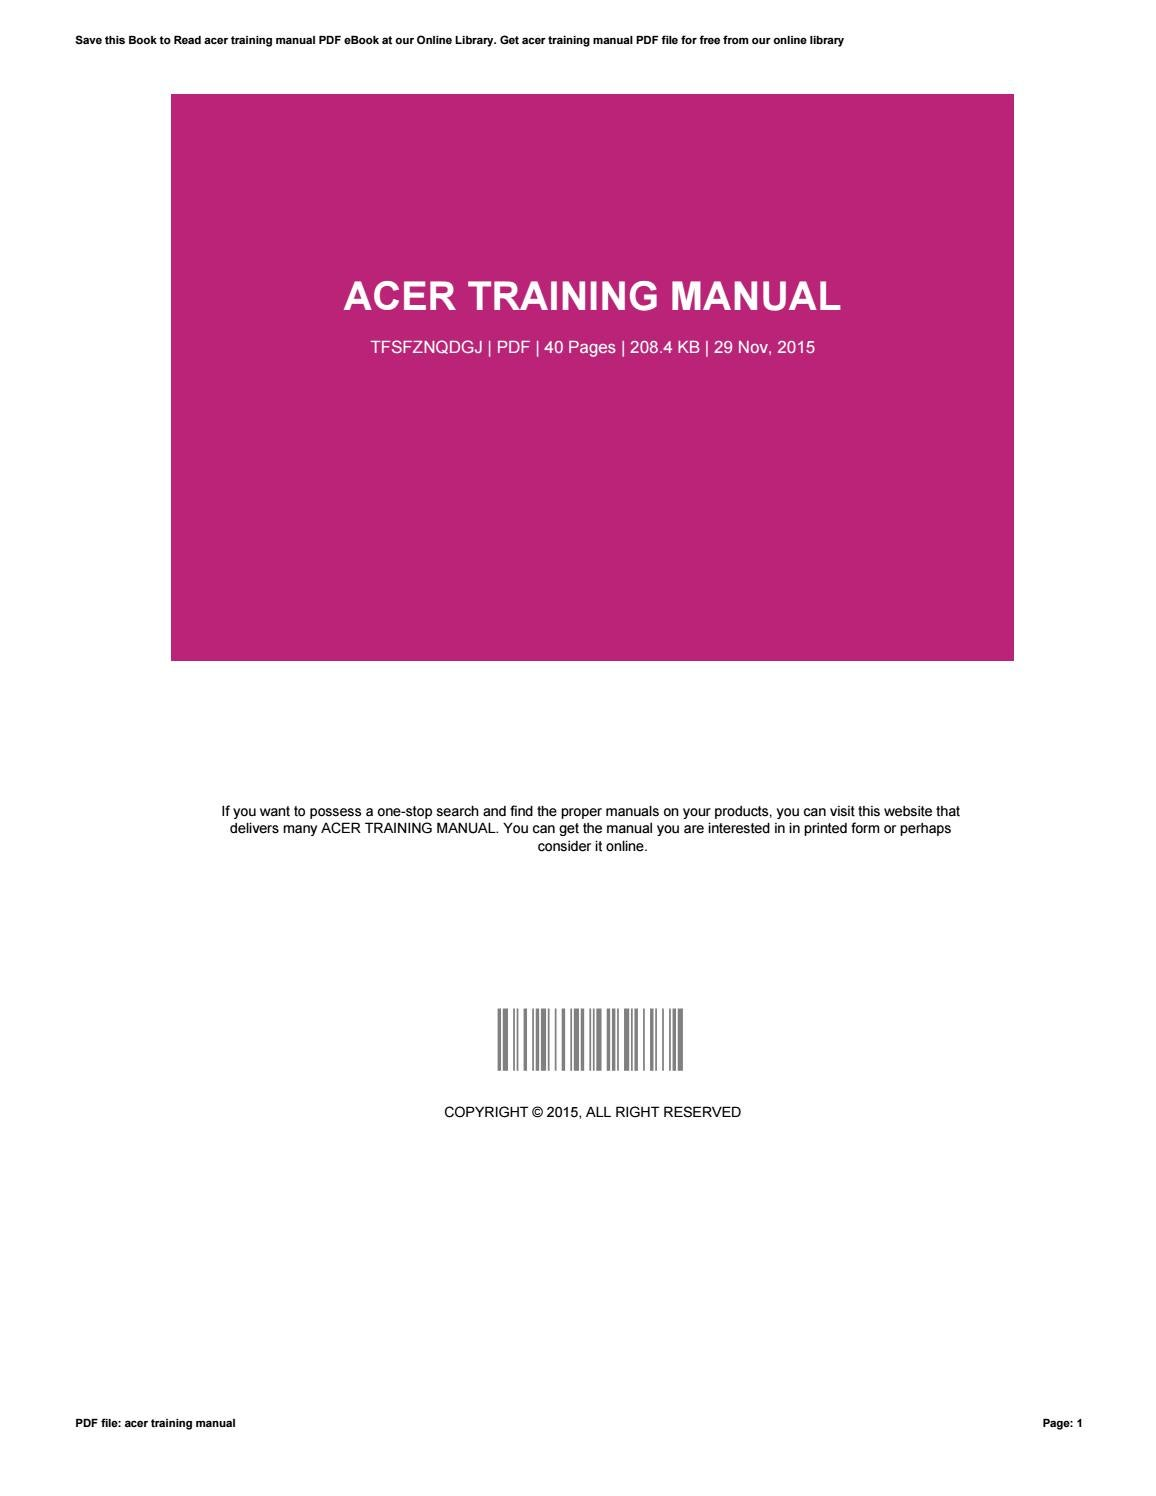 acer training manual by johnjones46331 issuu rh issuu com Acer ManualDownload Acer User Guides and Manuals